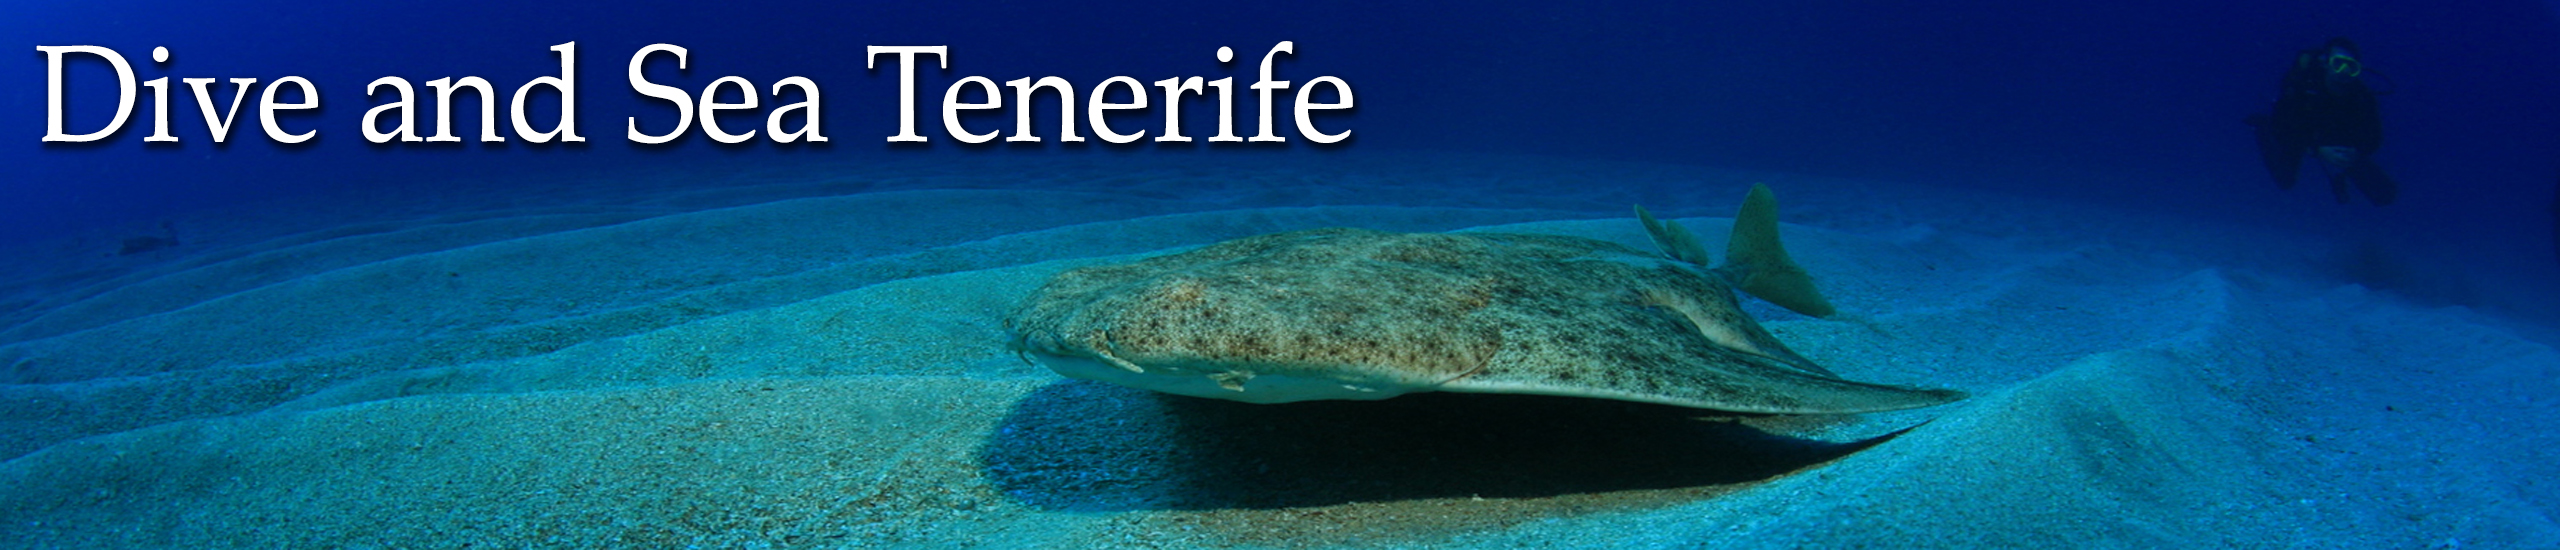 Diving in Tenerife-Dive-and-sea-tenerife-banner-angel-shark